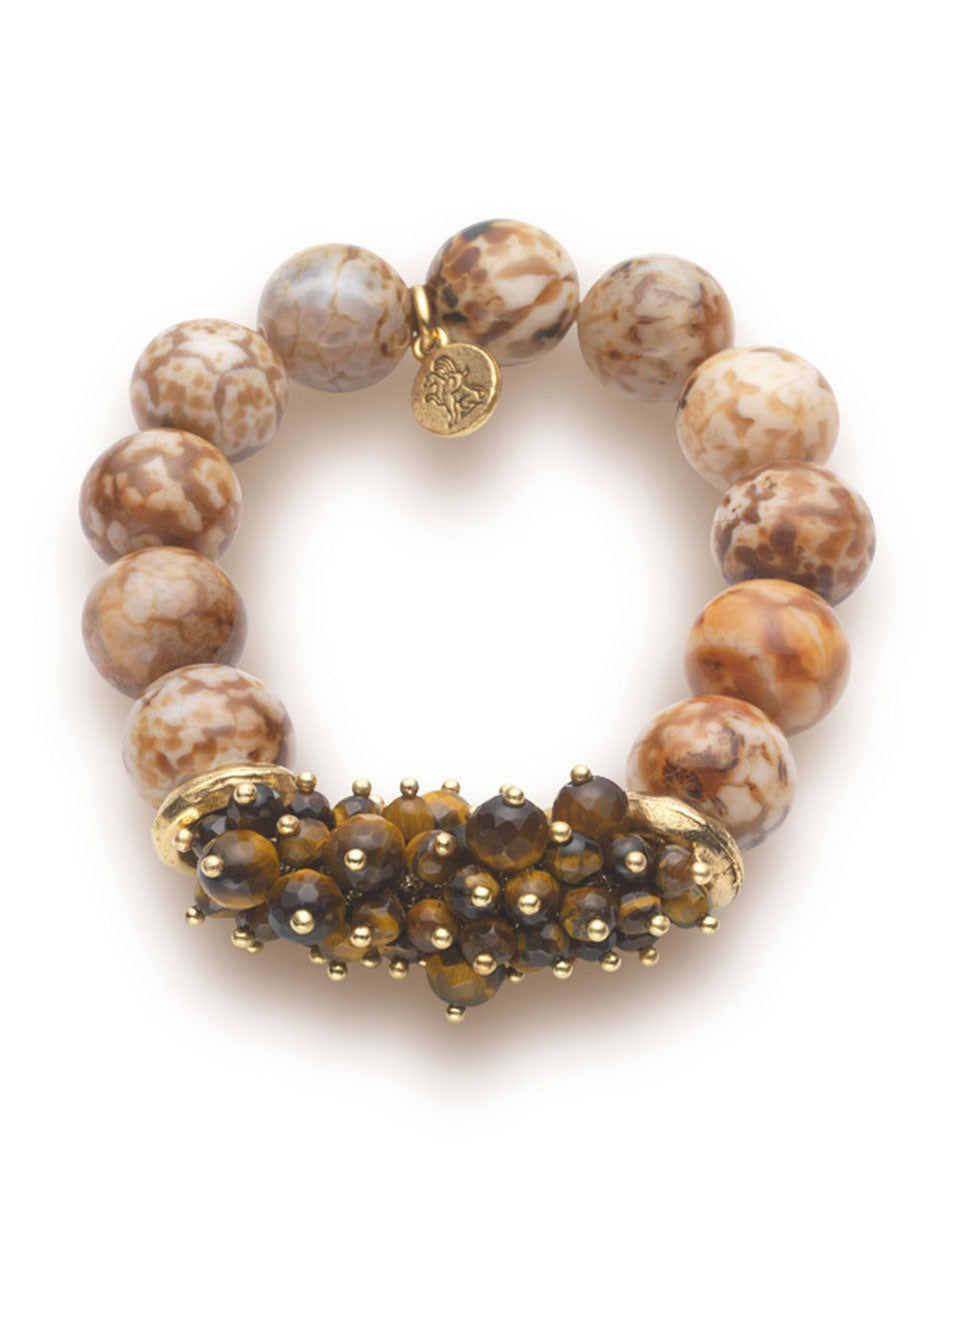 Fire Agate & Tigers Eye Bracelet